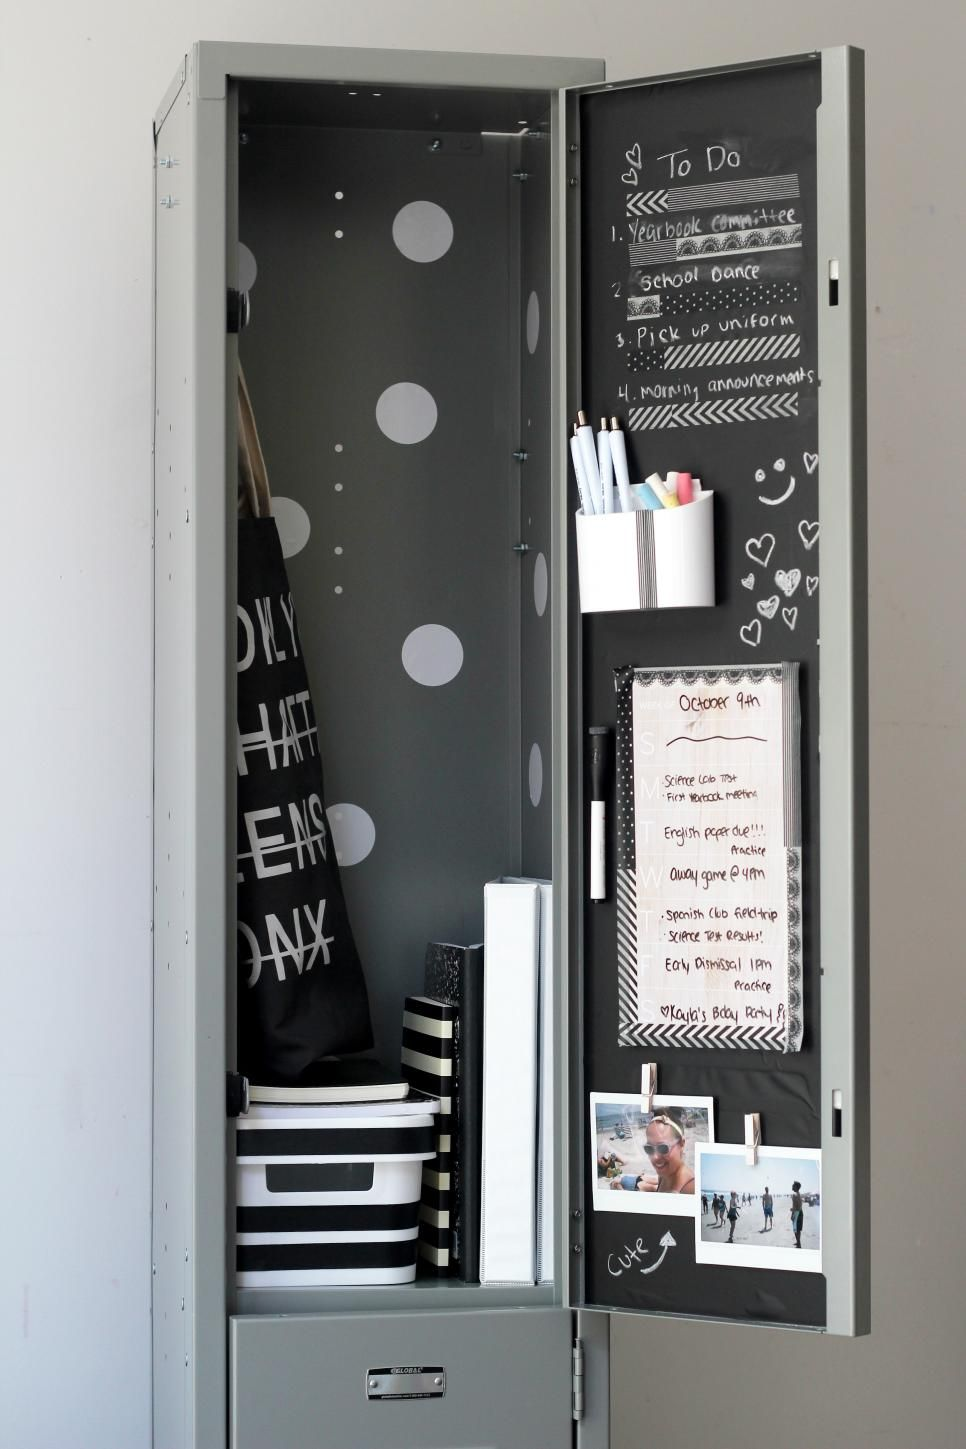 Decorating Ideas For Rentals: 22 DIY Locker Decorating Ideas